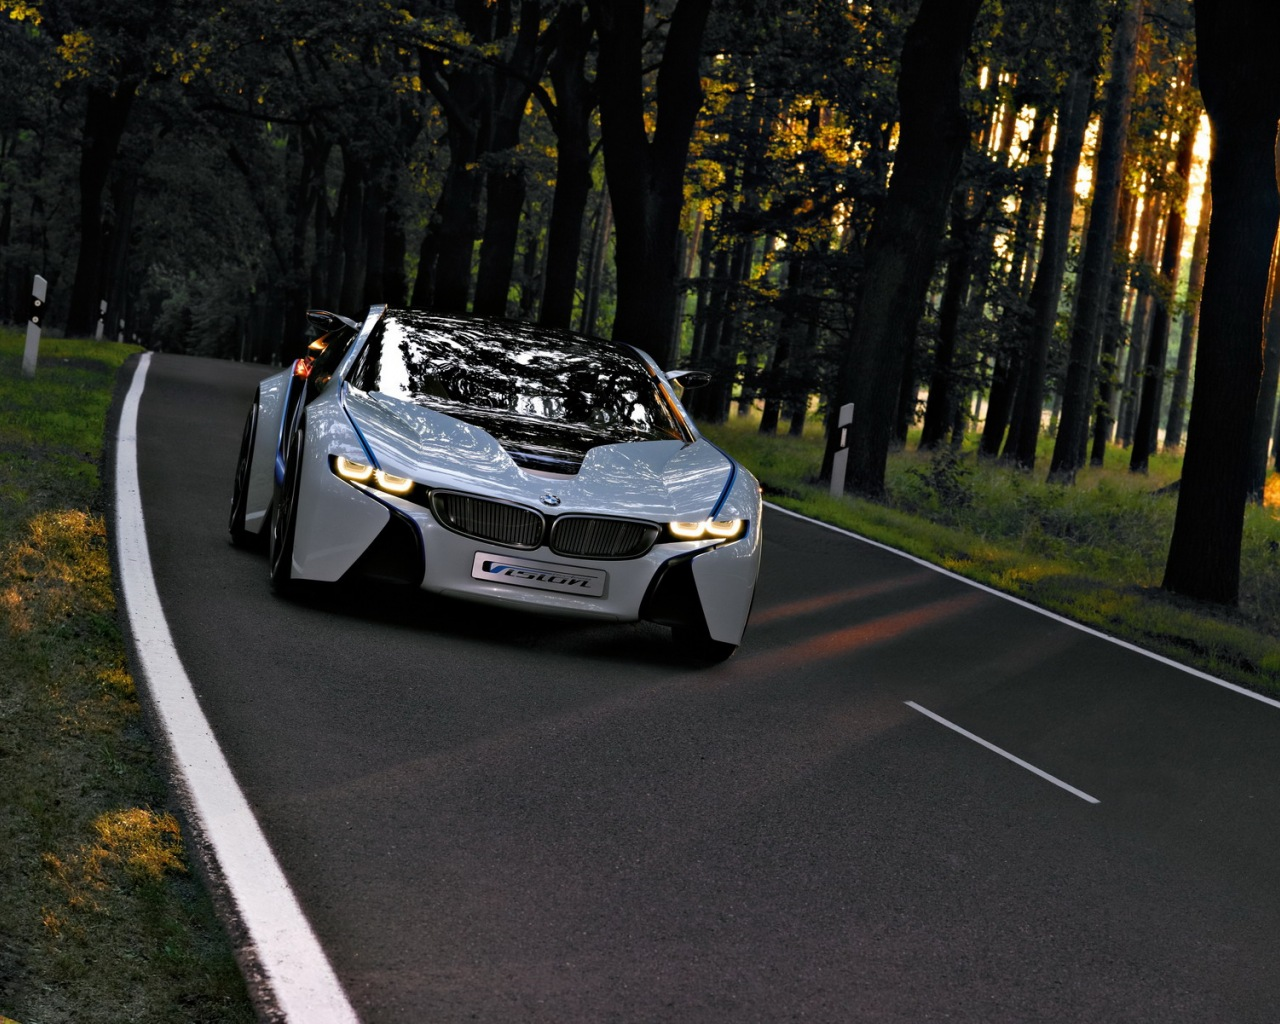 bmw-vision-efficientdynamics-23.jpg